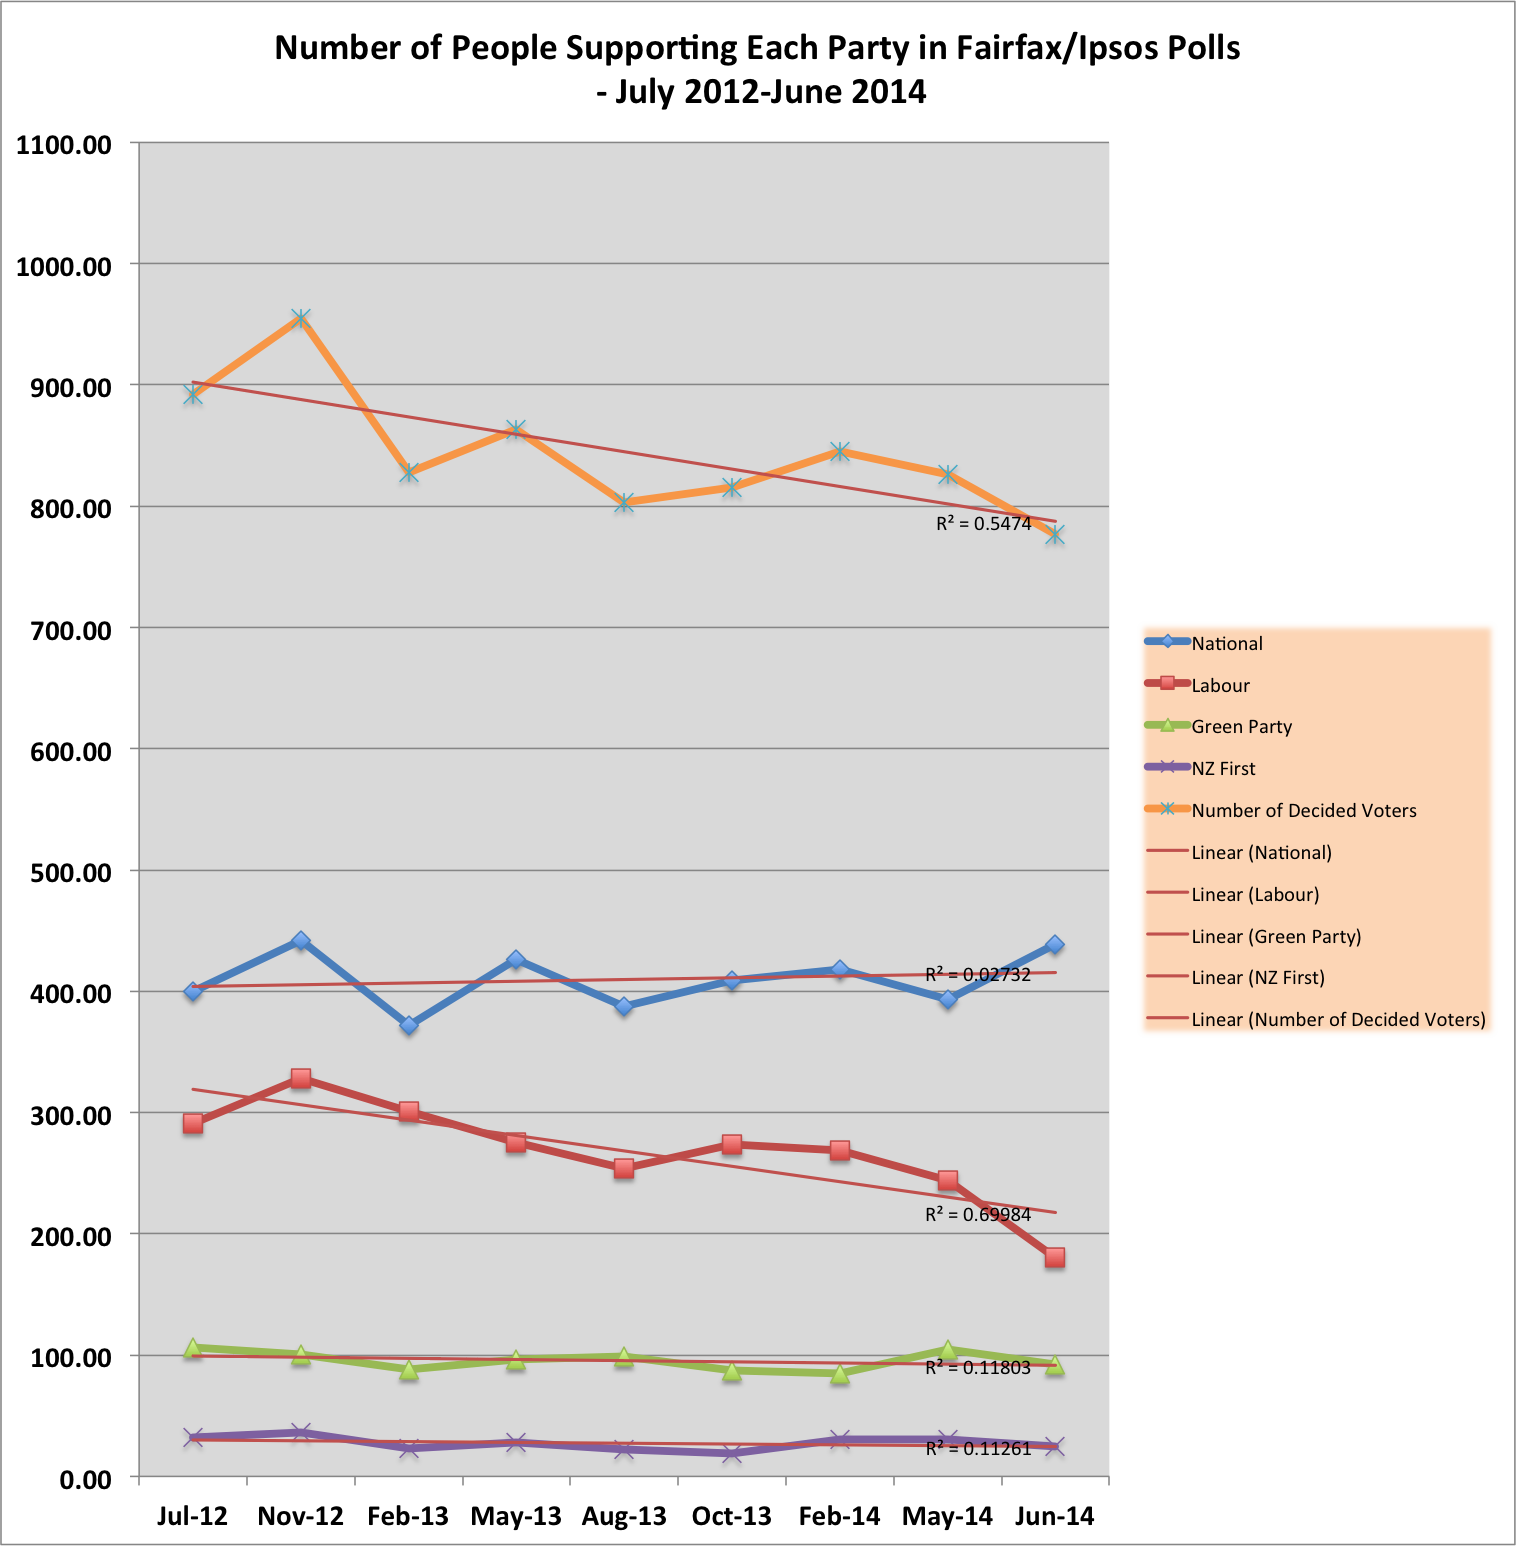 Expressed Party Support in Fairfax Polls - July 2012 to June 2014